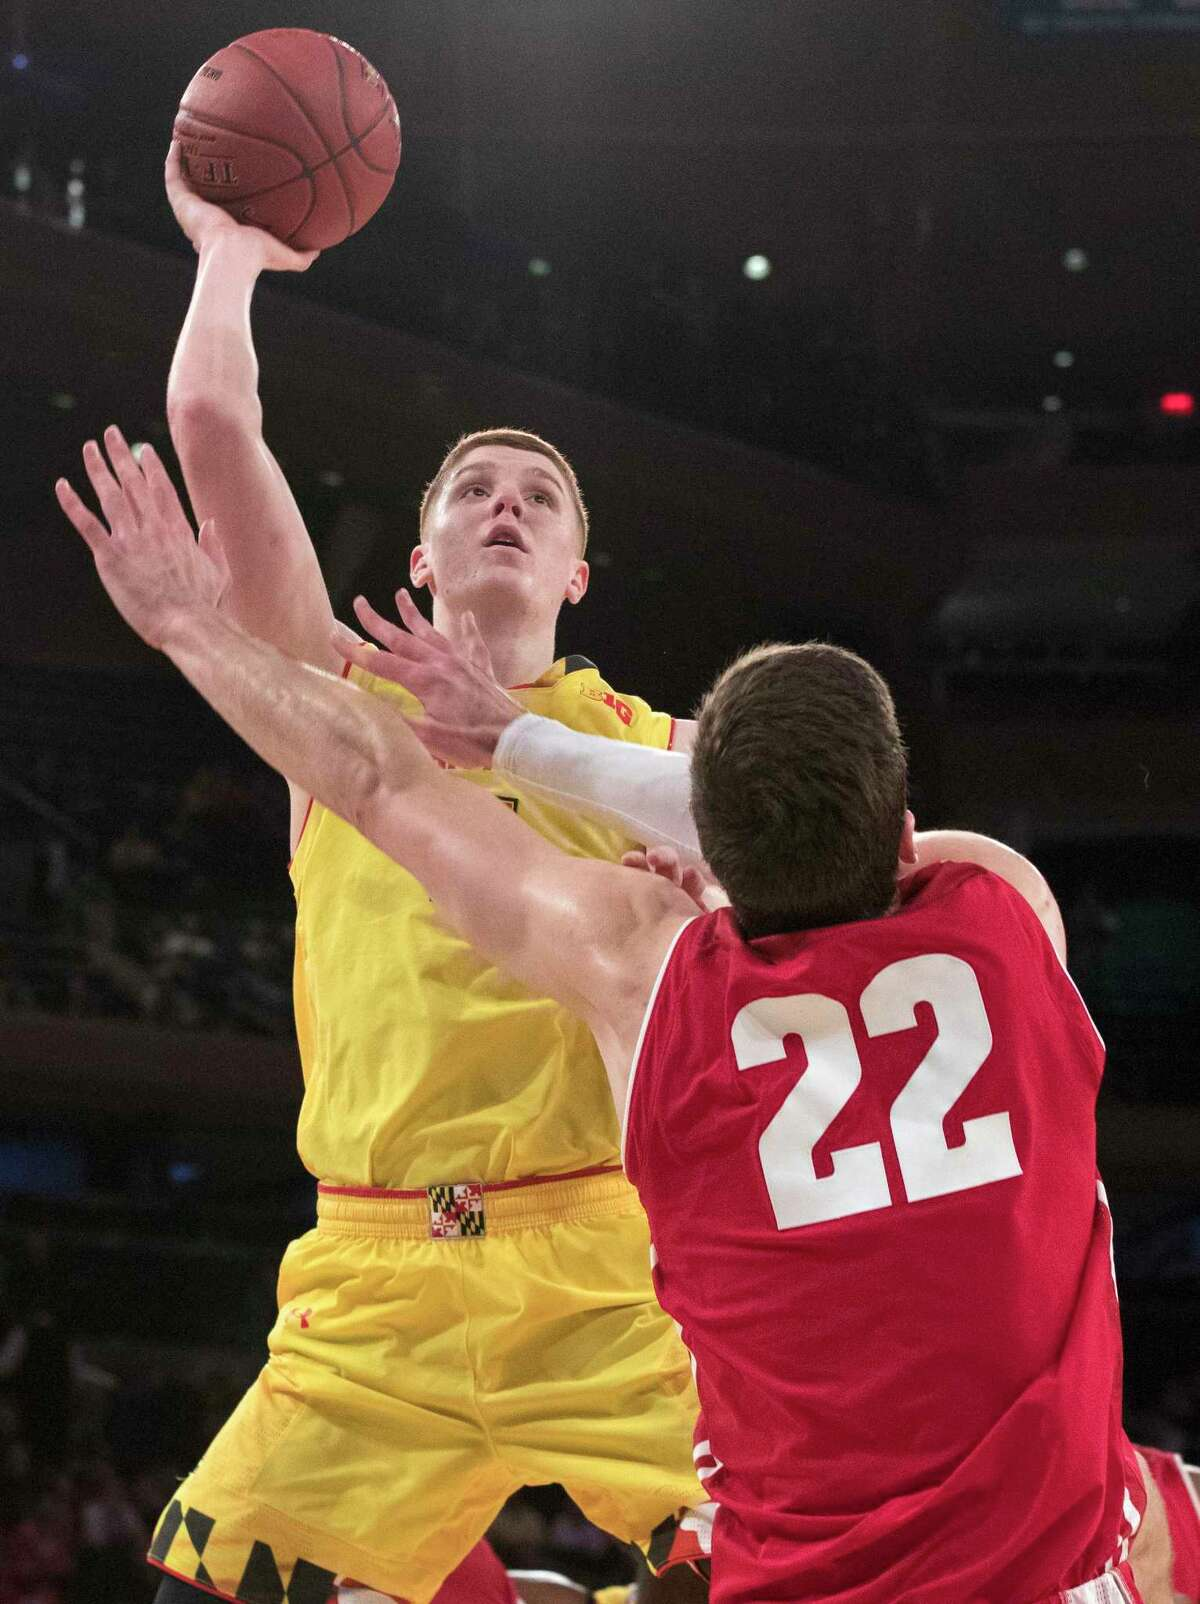 Maryland guard Kevin Huerter goes to the basket against Wisconsin forward Ethan Happ (22) during the second half of an NCAA college basketball game in the second round of the Big Ten conference tournament, Thursday, March 1, 2018, at Madison Square Garden in New York. Wisconsin won 59-54. (AP Photo/Mary Altaffer)